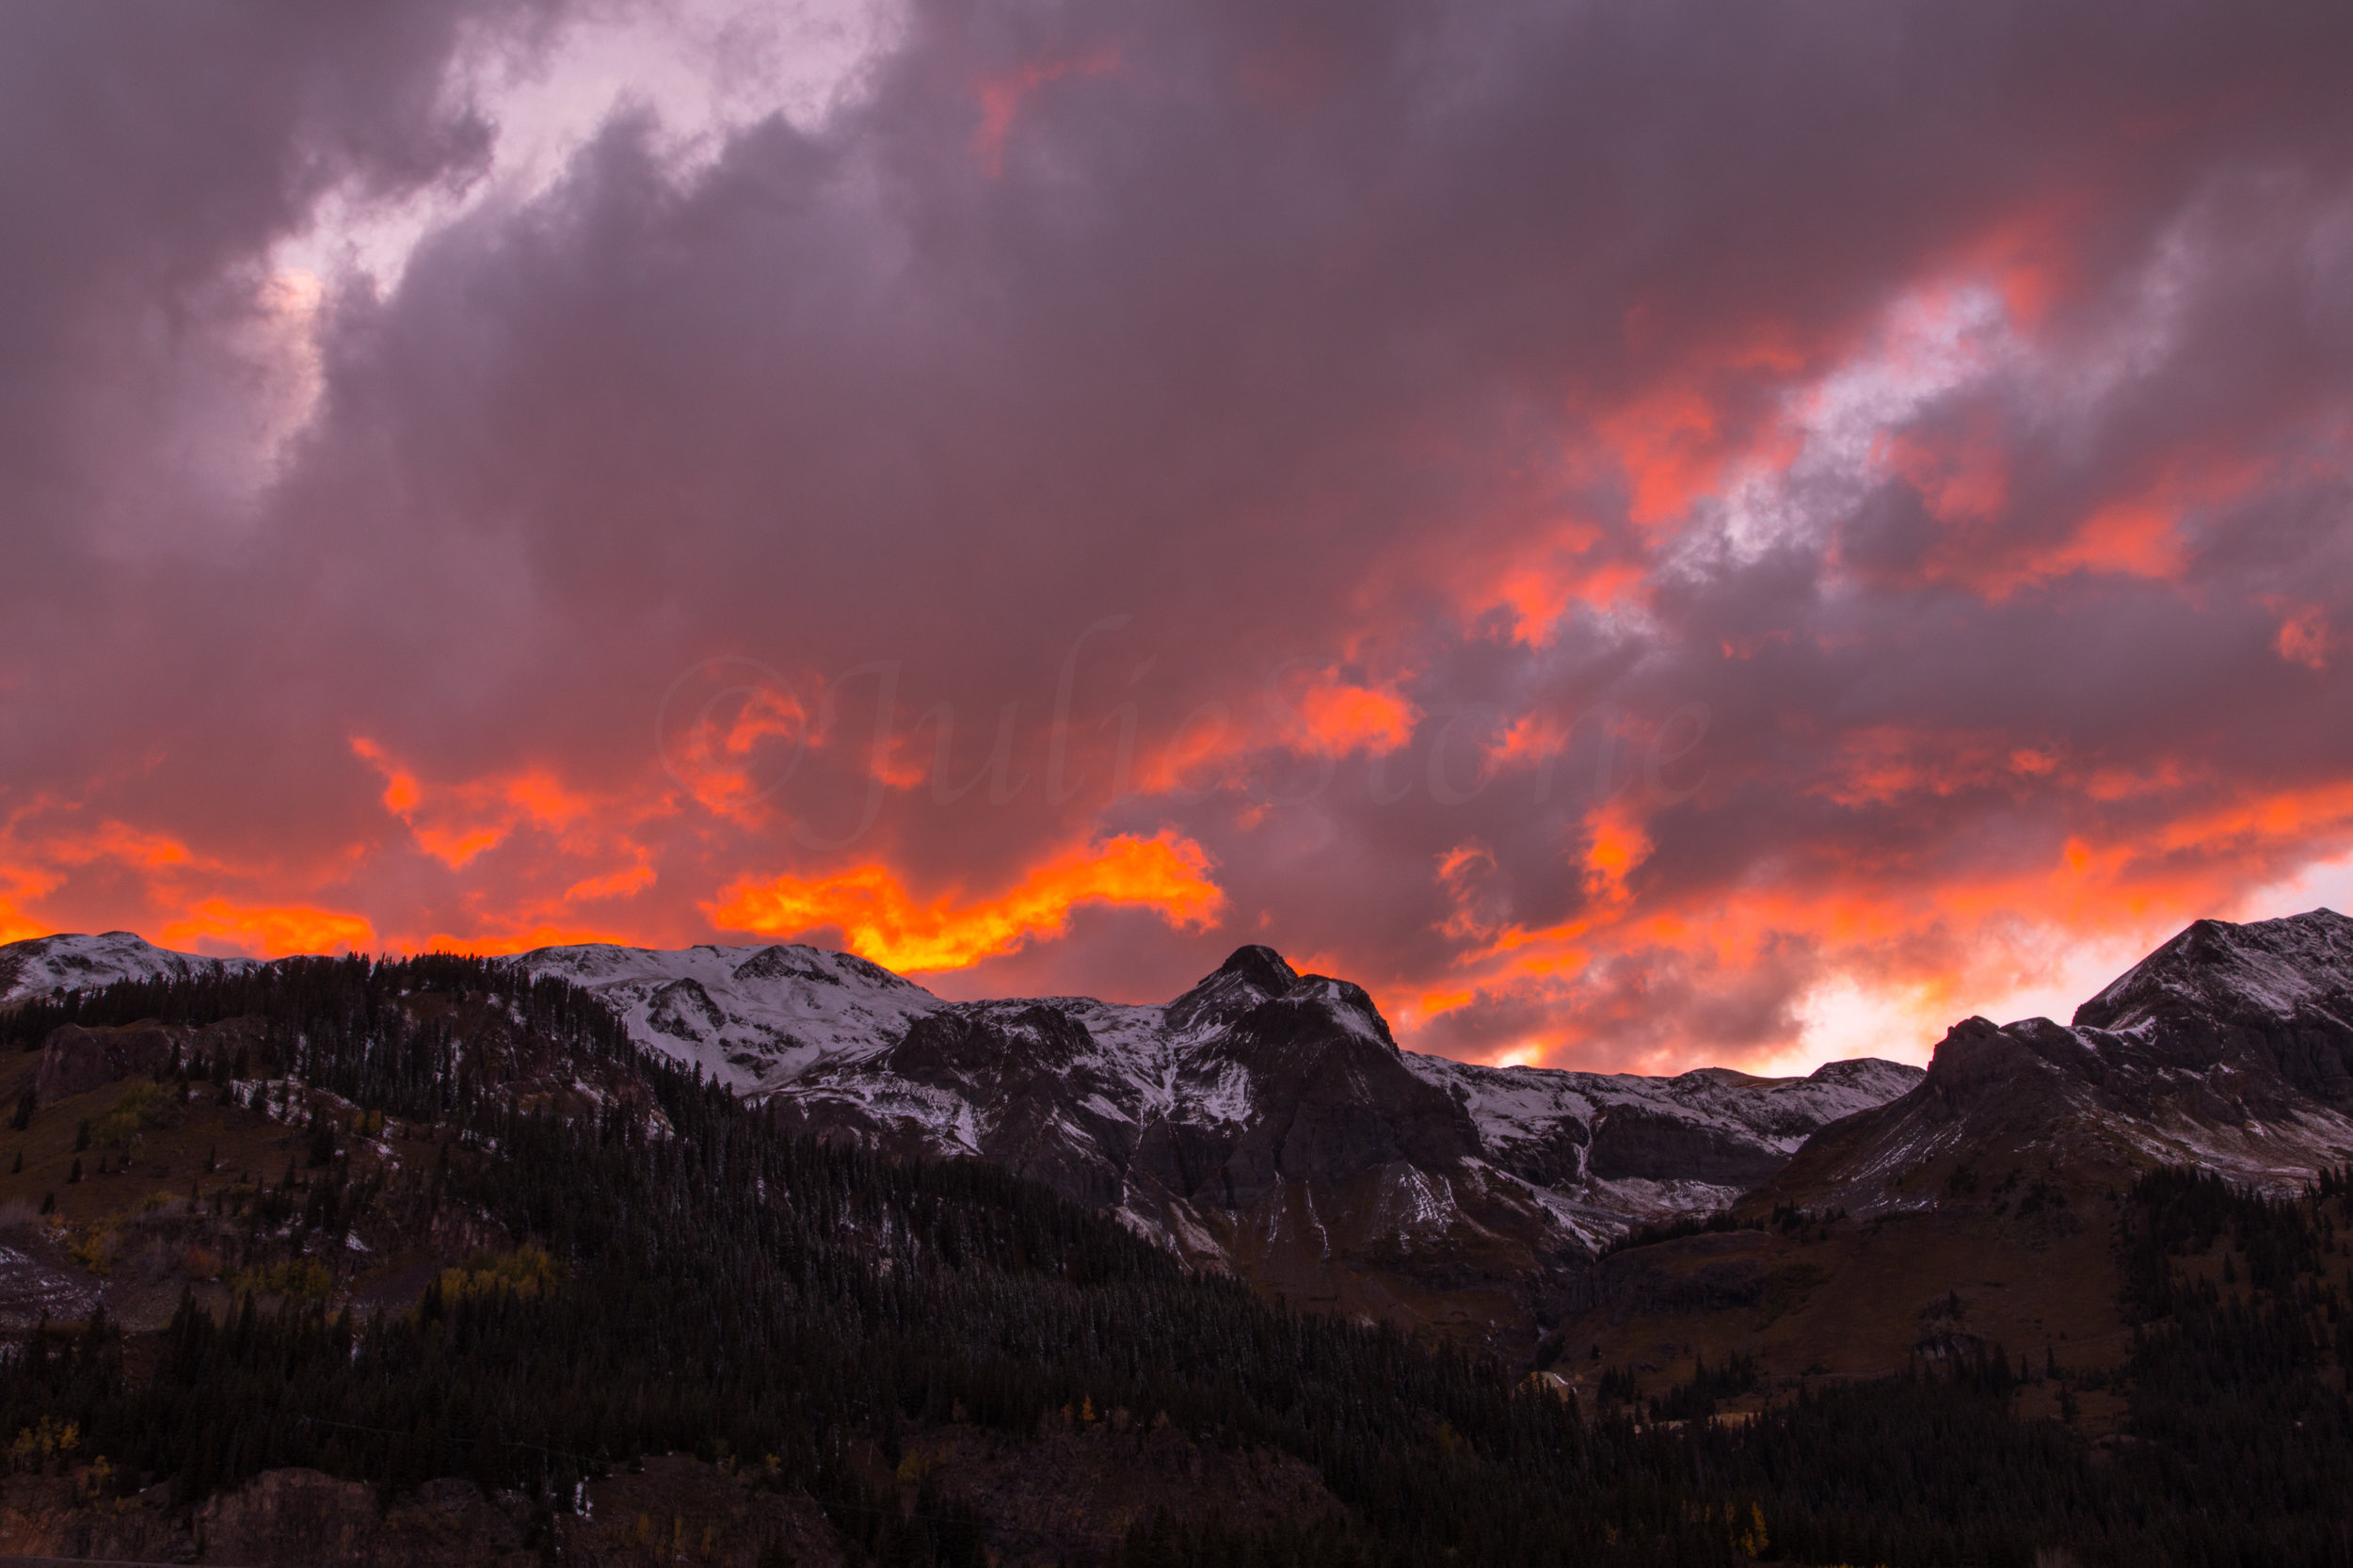 Red Mountain Sunset, Image # 5389